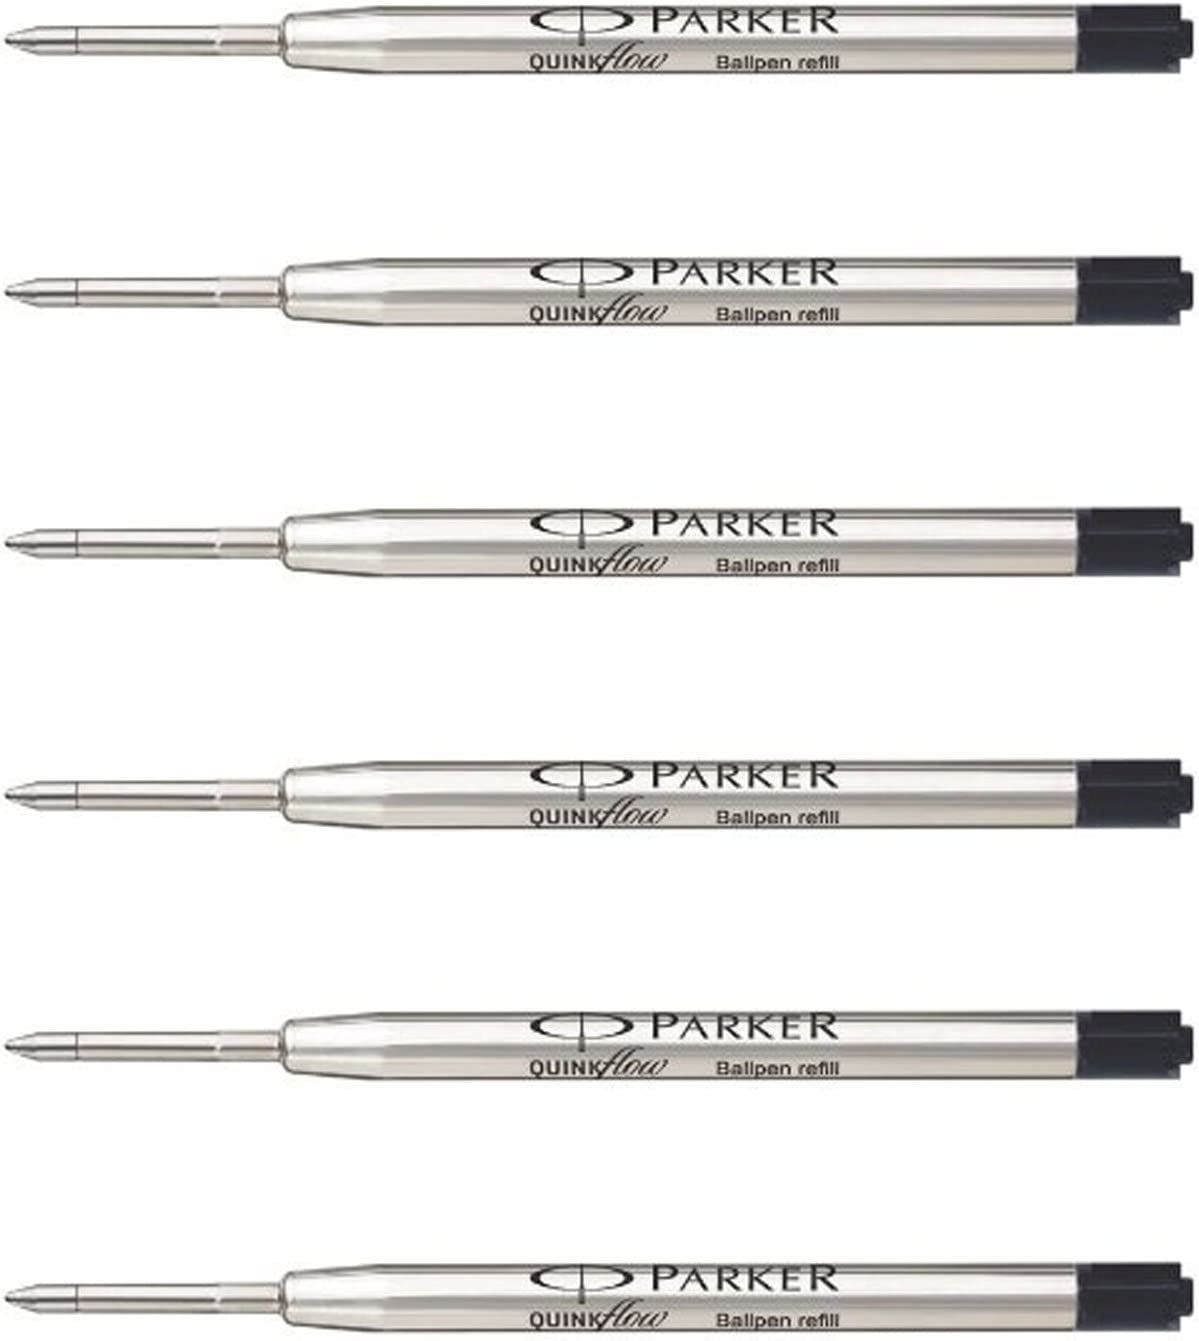 2 Pack Genuine Parker Ballpoint Refill BLACK Biro Medium Quink Flow Ball Pen